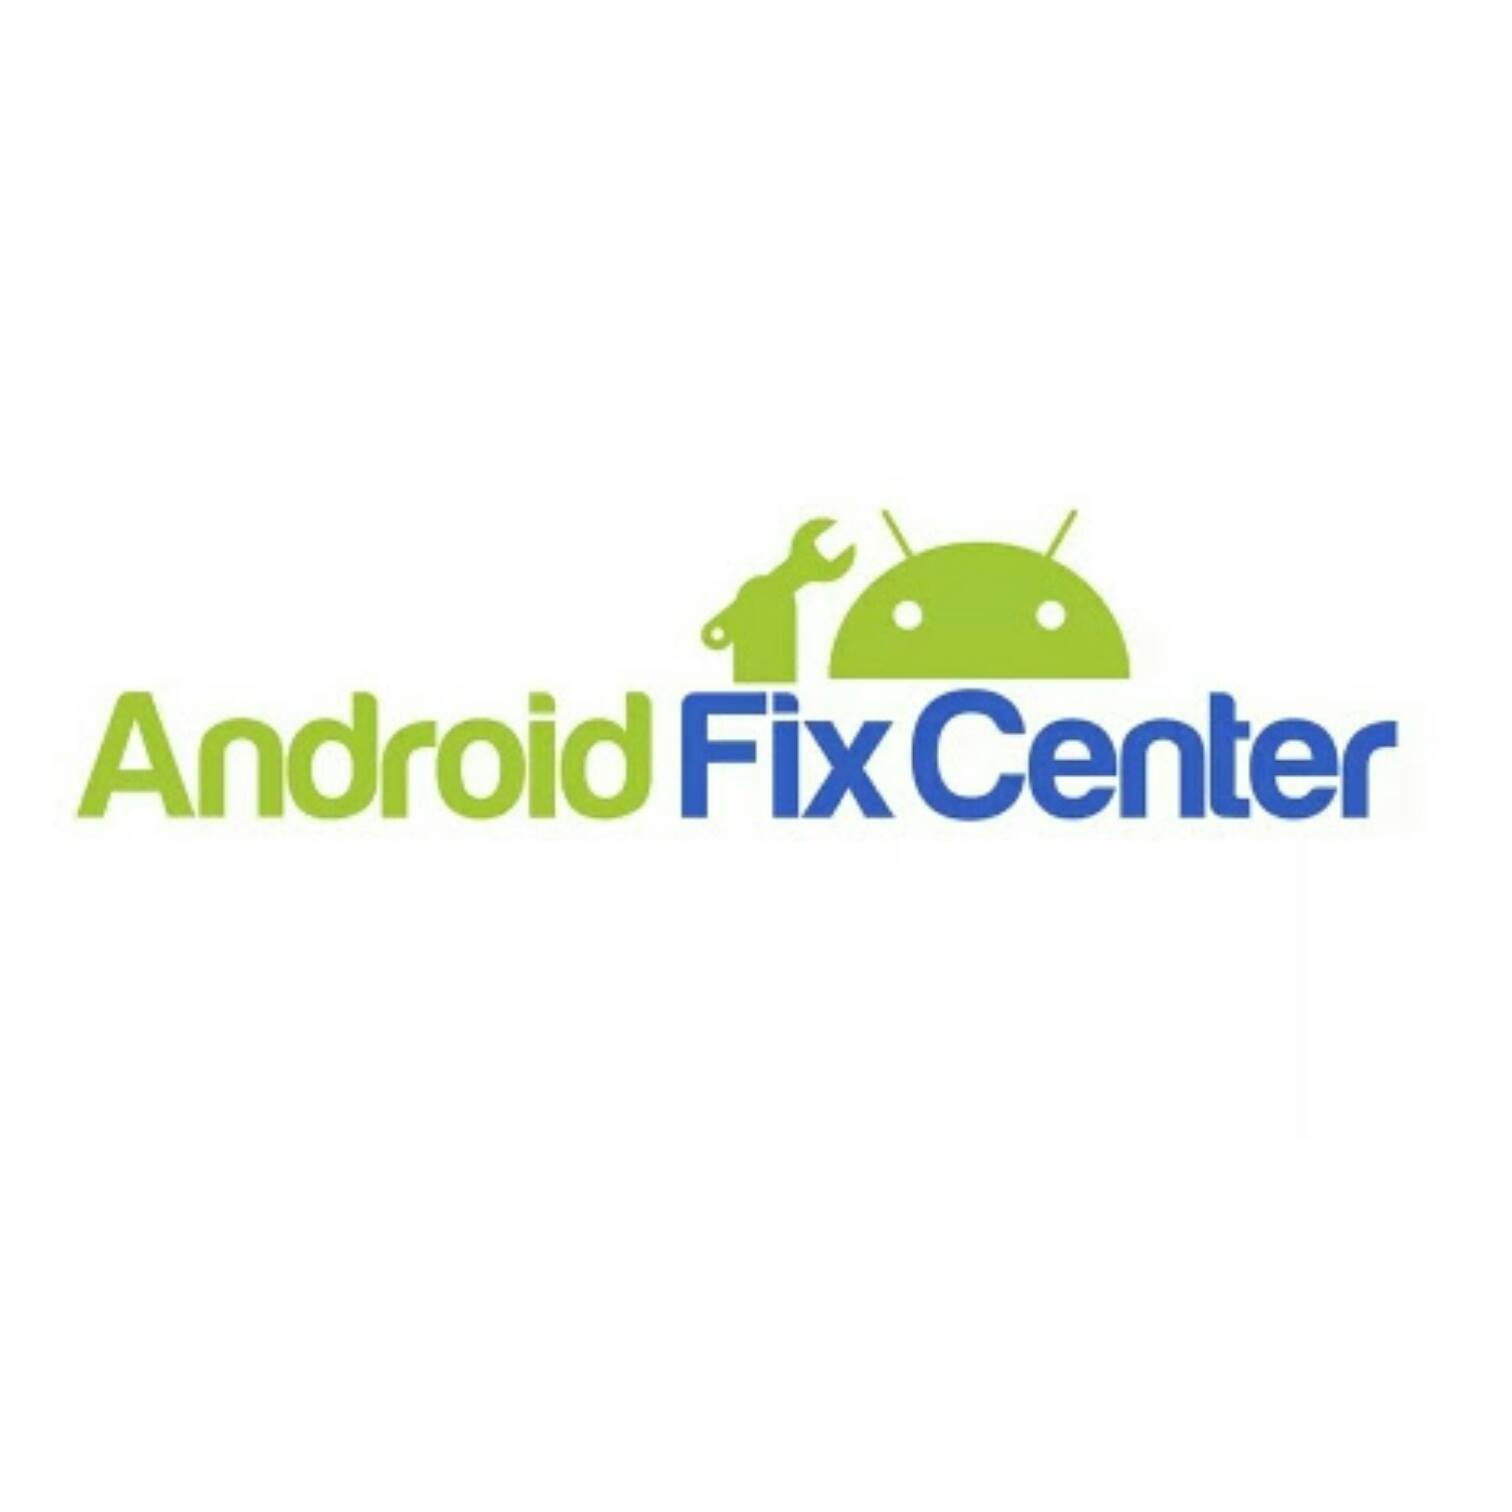 Android Fix Center